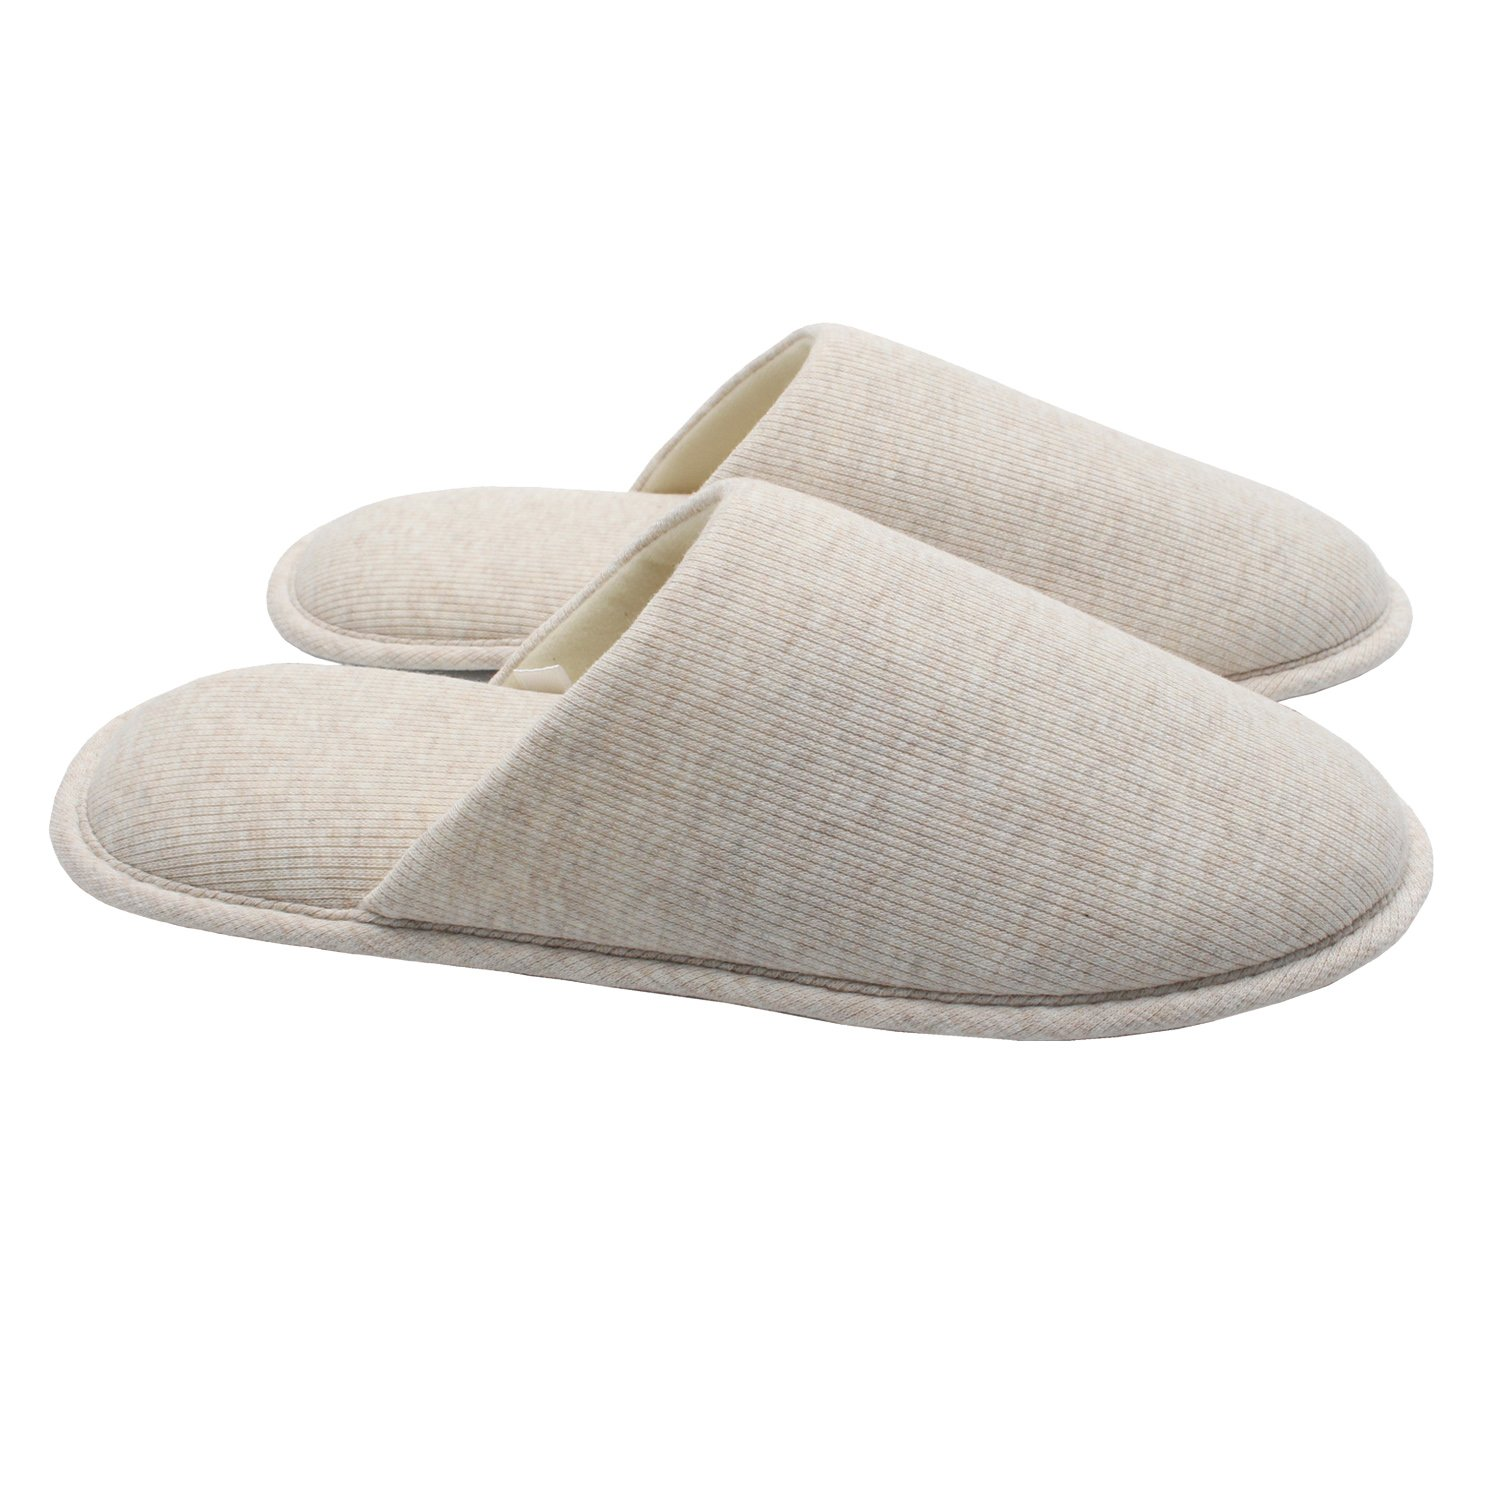 Ofoot Men's Cozy Cotton Thread Cloth House Slippers, Indoor / Outdoor Slip on Shoes